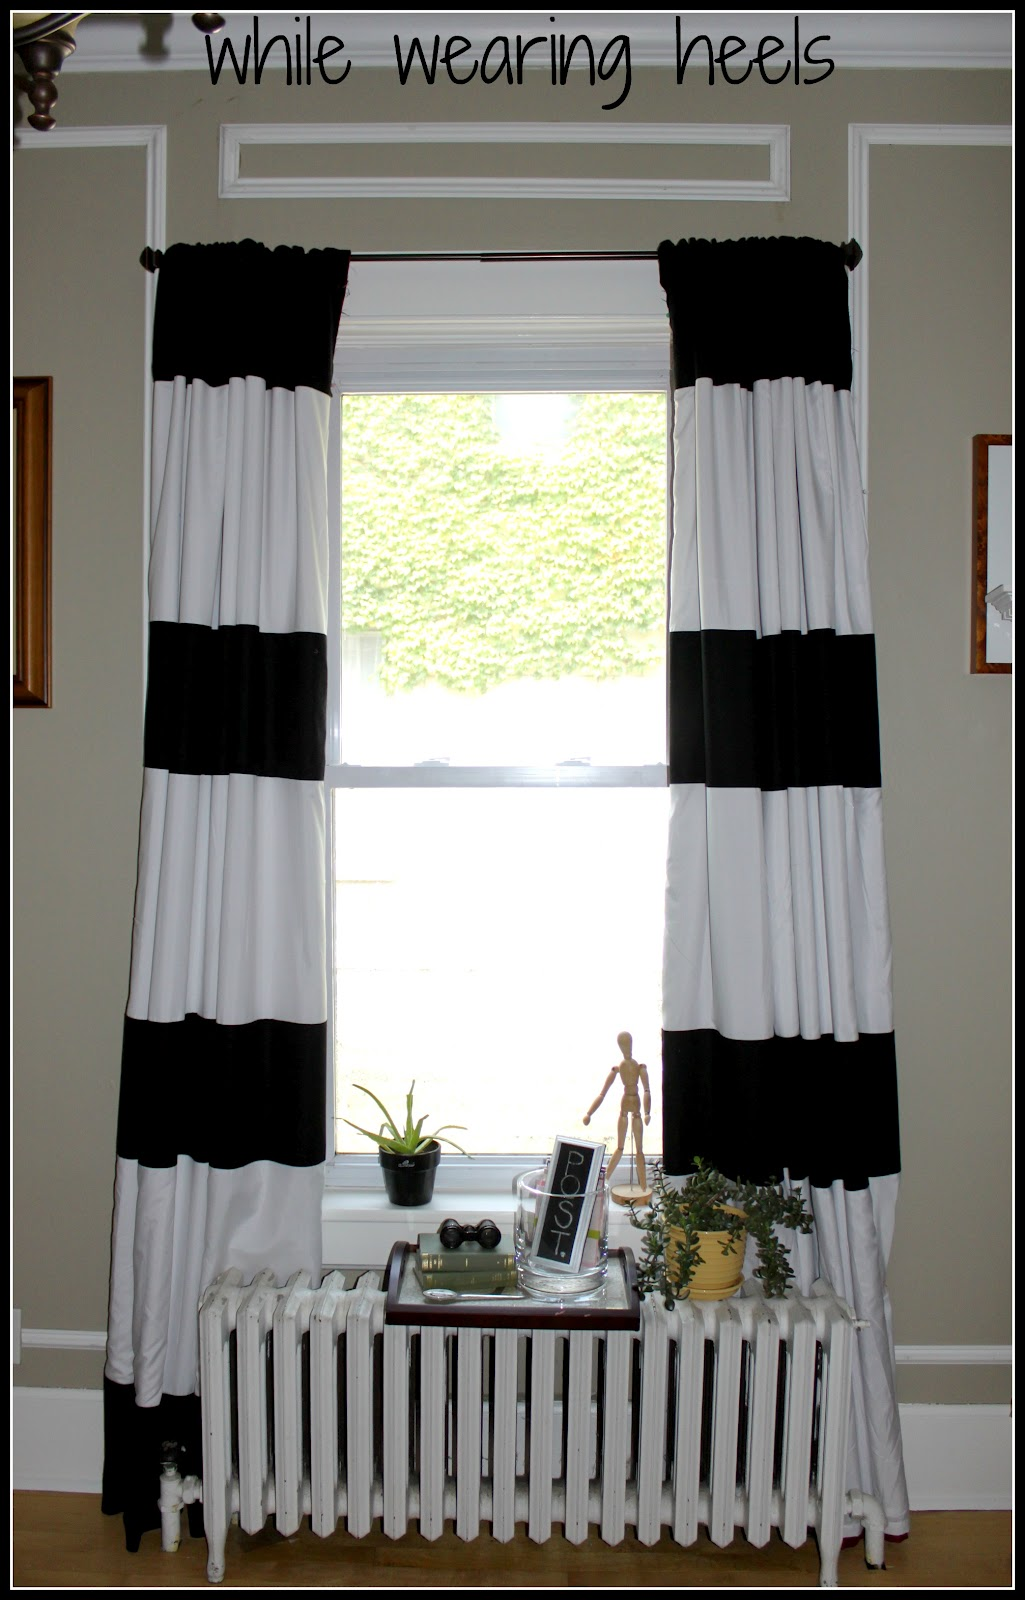 Black And White Horizontal Striped curtains with white table before single hung window